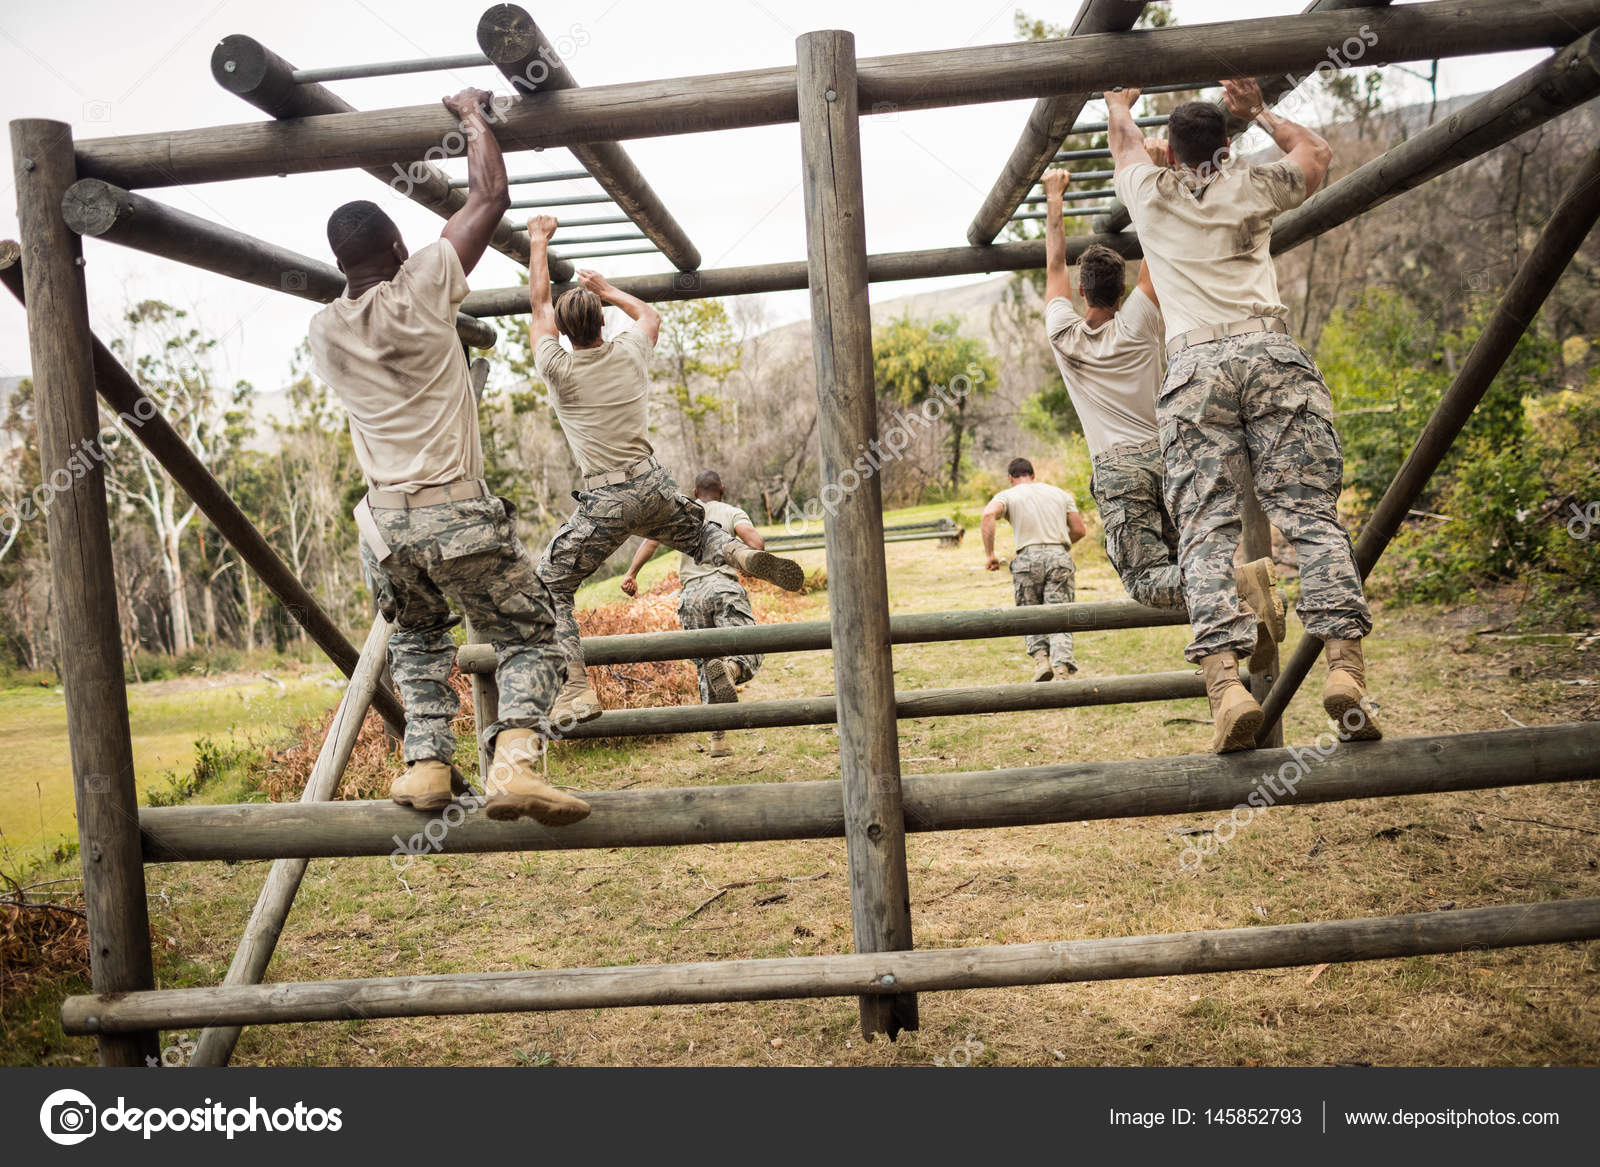 Klettergerüst Monkey Bar : Free monkey bars images pictures and royalty stock photos